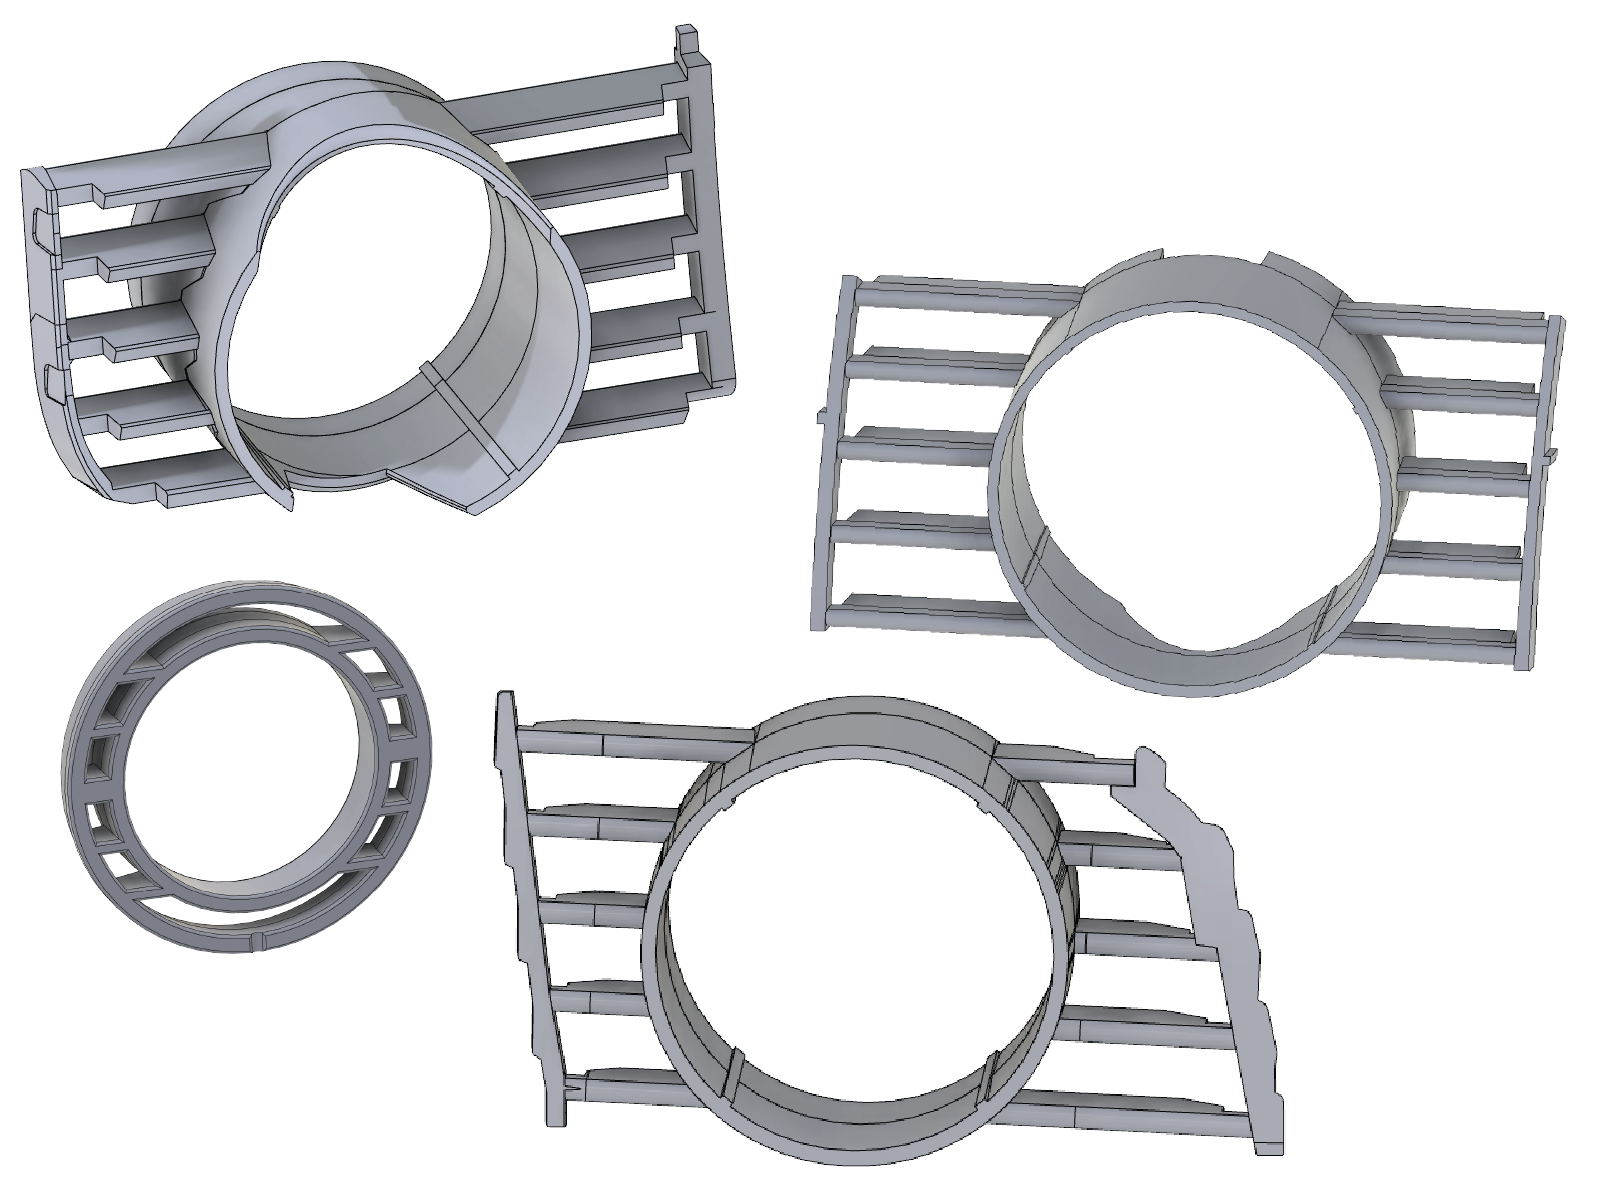 Aftermarket turbo mount CAD Designs